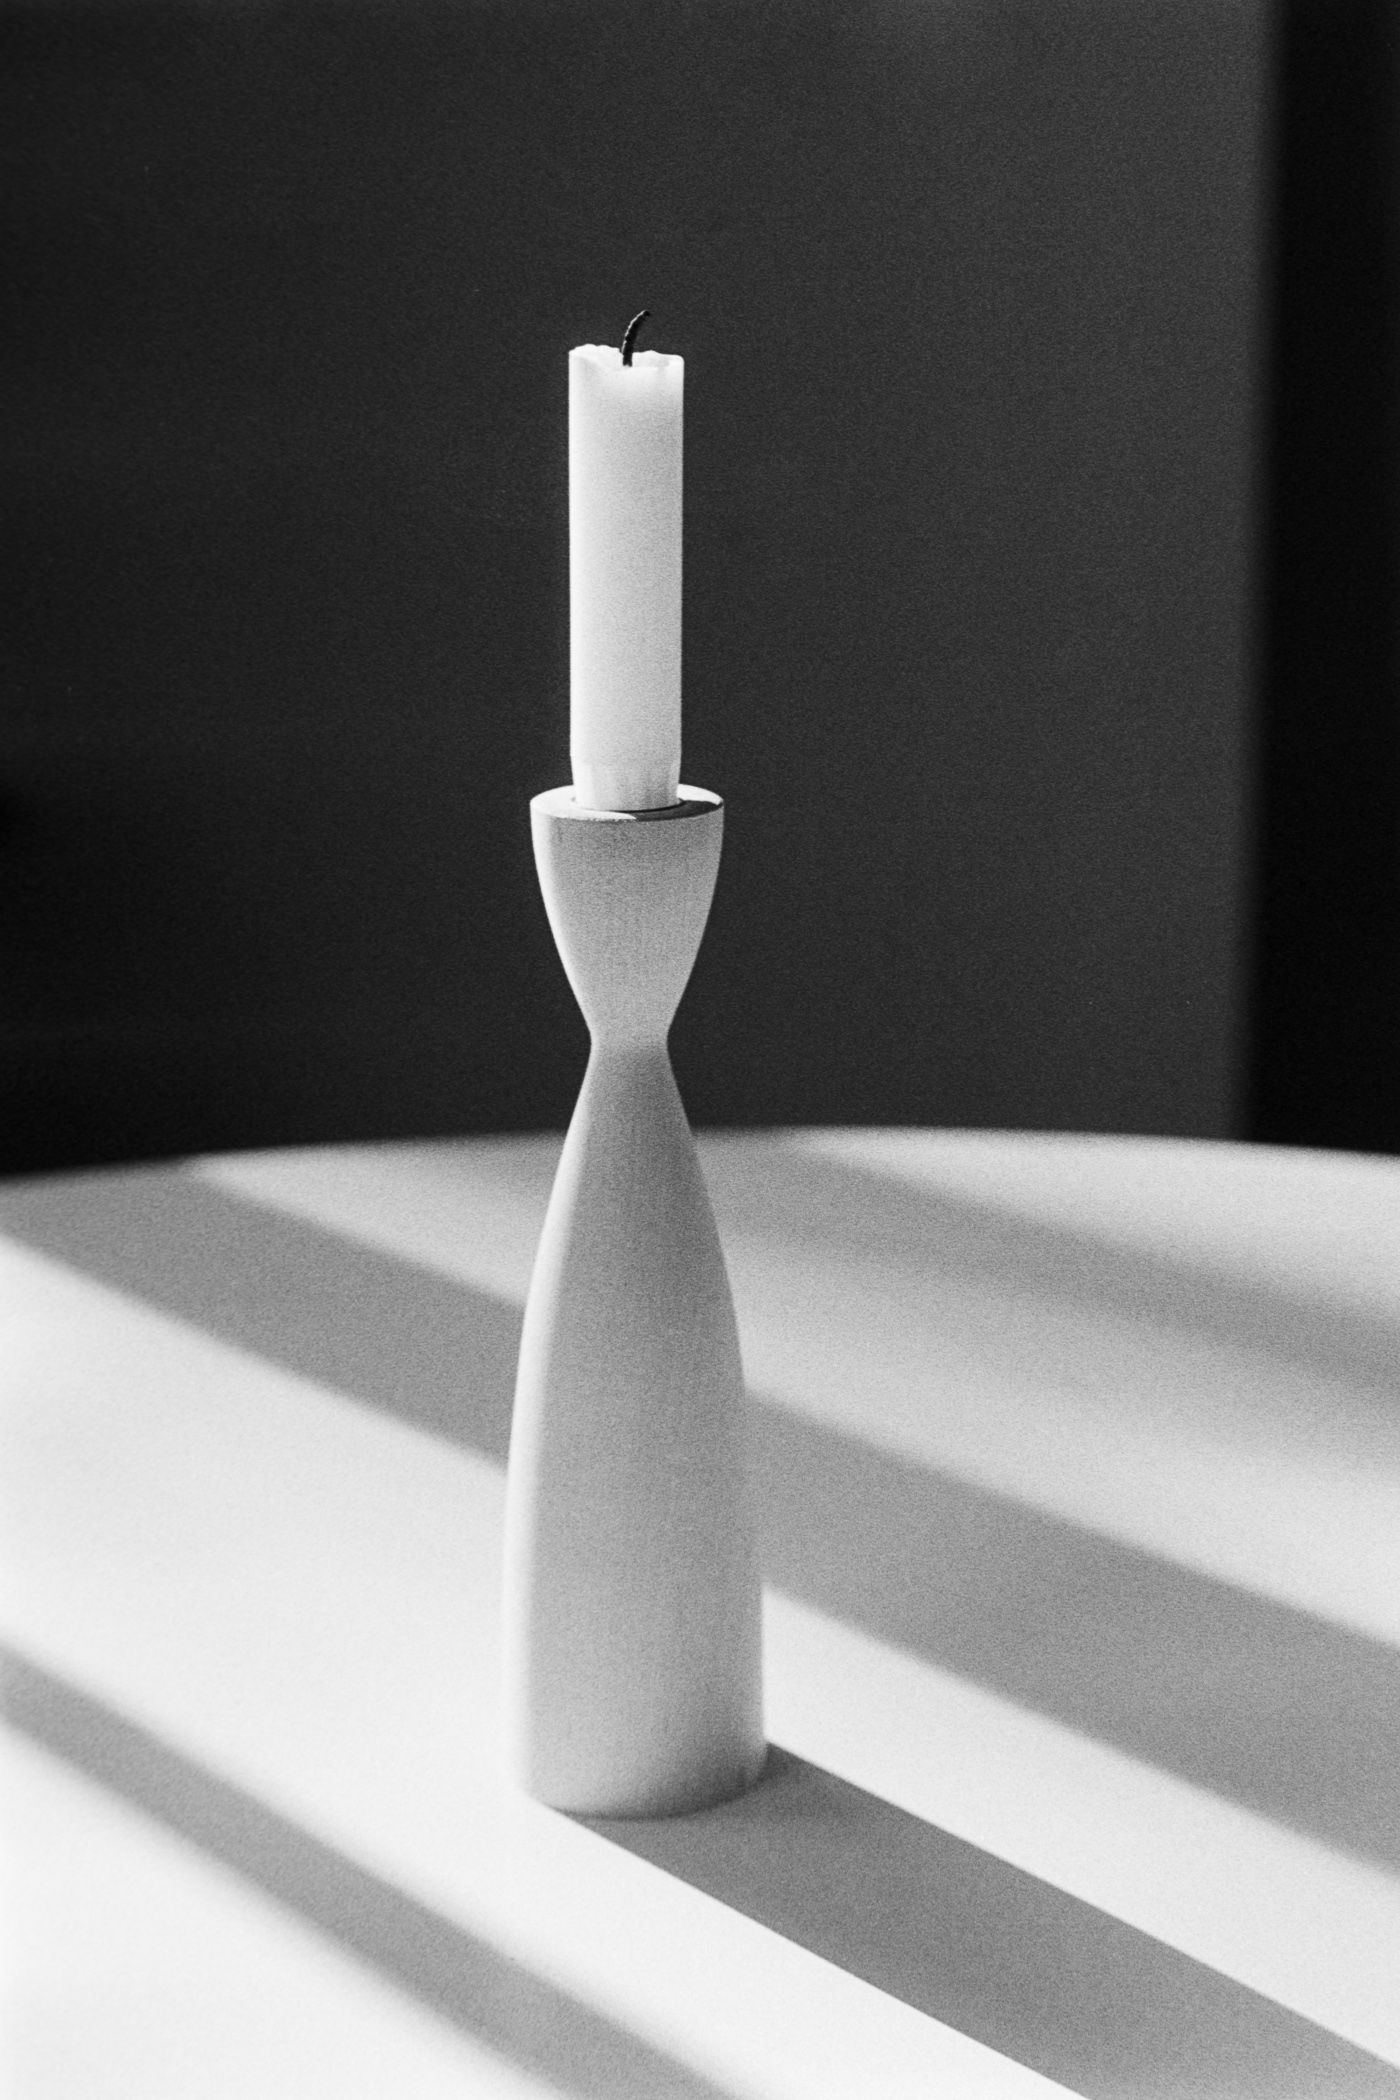 candle still life candle shadow play  Kodak TriX 400 film with 35mm Nikon FE